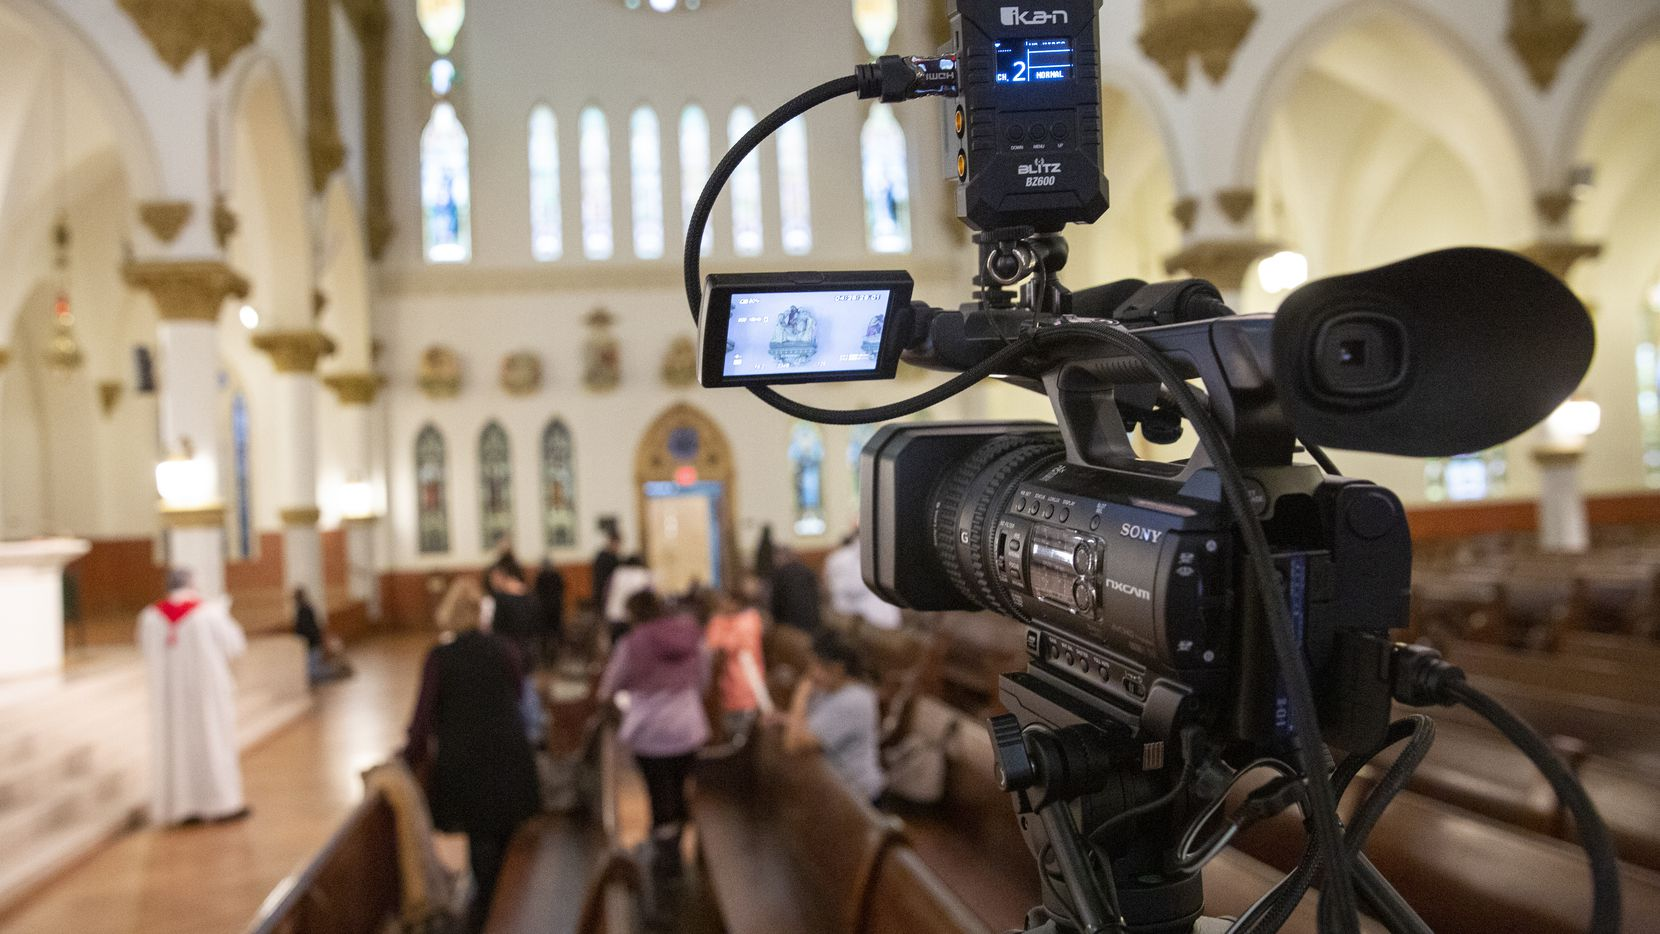 The Diocese of Dallas films Rev. Stephen Bierschenk pray the Stations of the Cross at the Cathedral Santuario de la Virgen de Guadalupe on March 13, 2020 in Dallas.